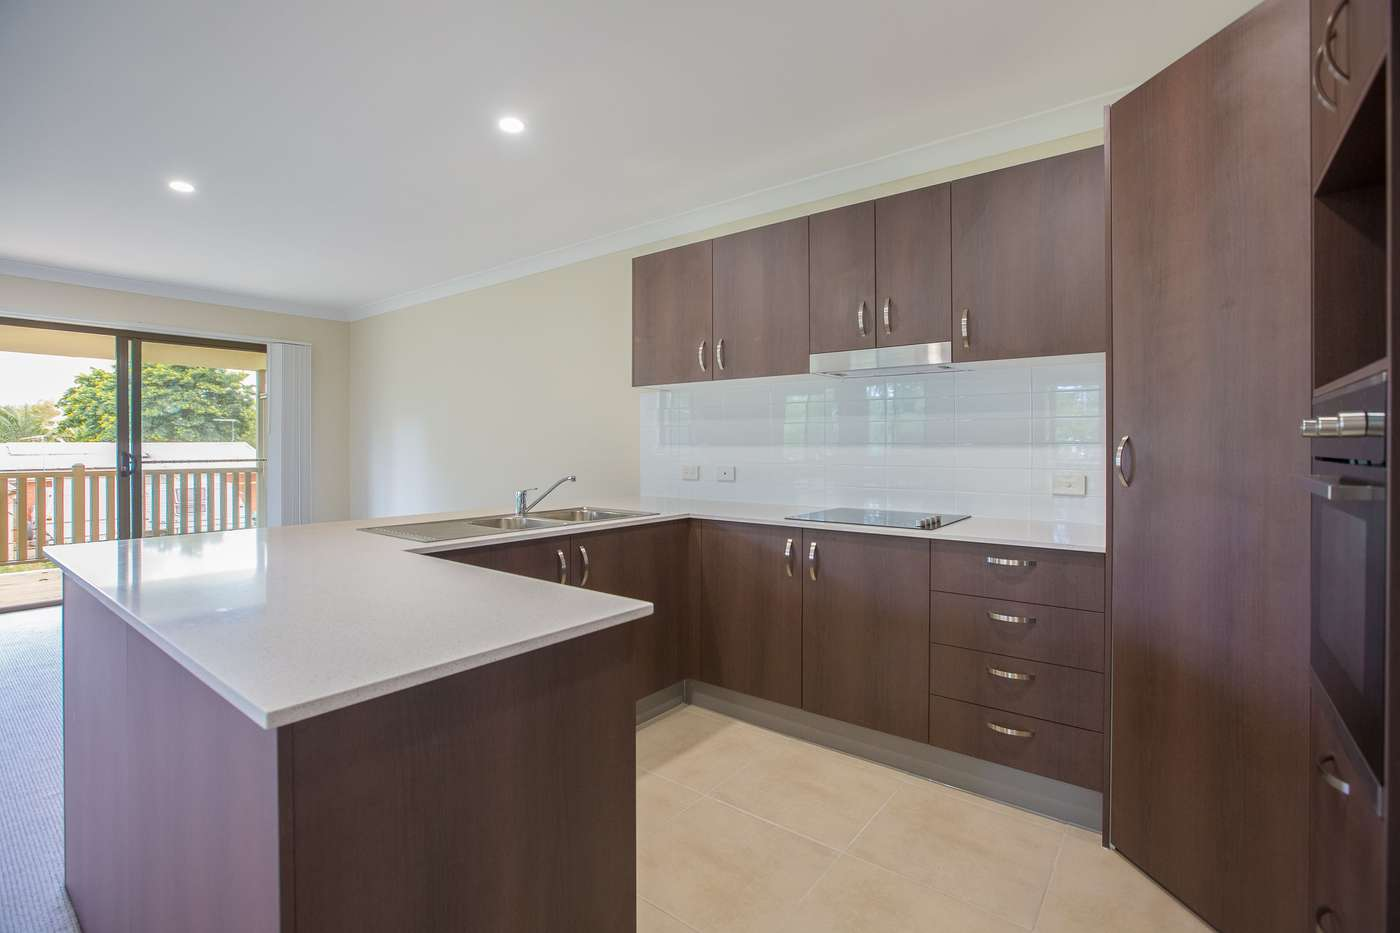 Main view of Homely house listing, 24/1 Able Street, Sadliers Crossing, QLD 4305